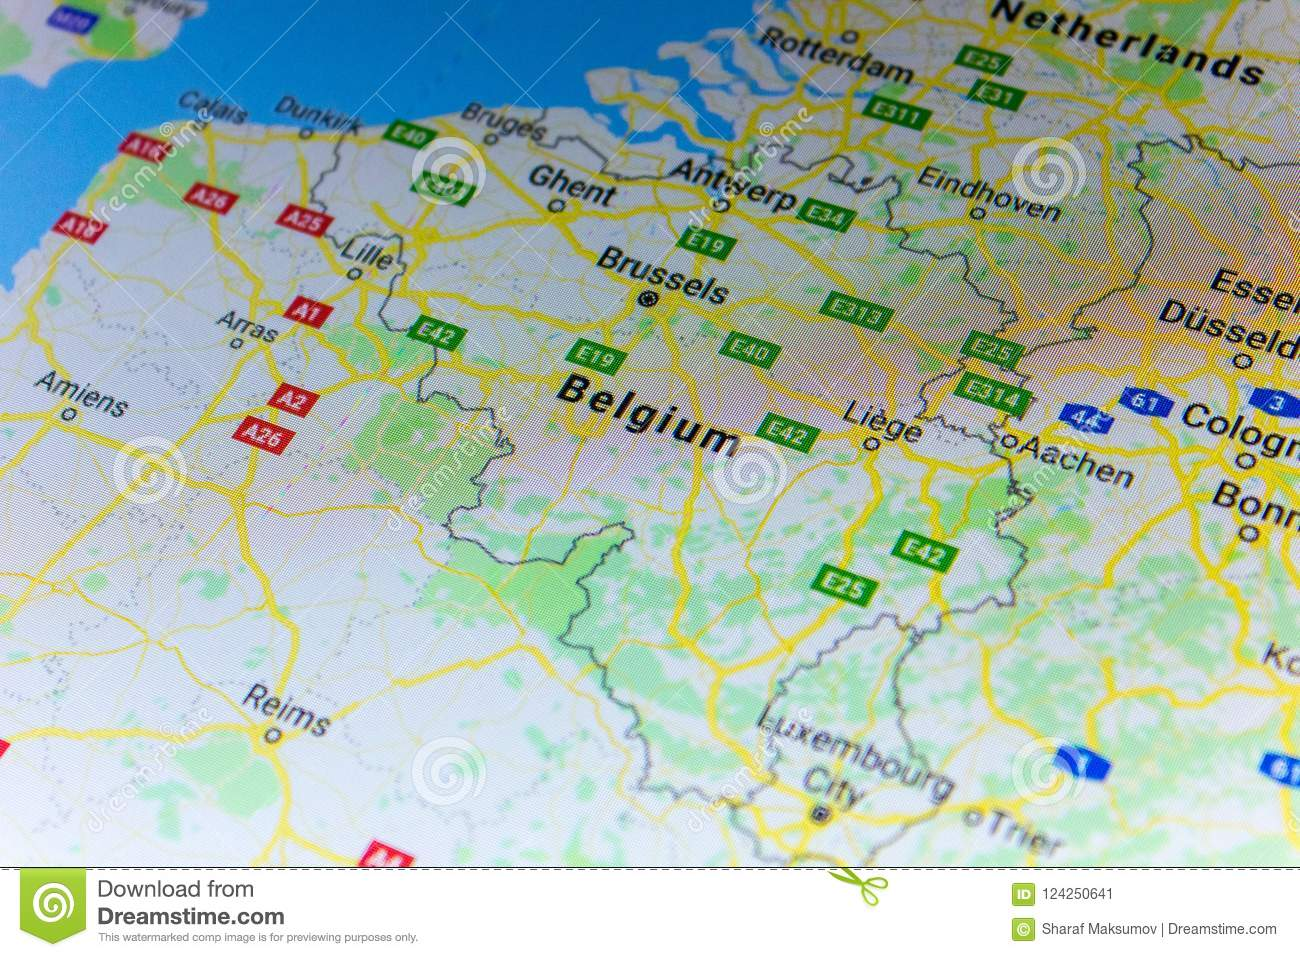 Ryazan, Russia - July 08, 2018: Country Of Belgium On The ... on world map russia, google map of georgia usa, google car russia, sochi russia, lake baikal russia, bing russia, google famous russian things, thunderstone russia, halo online russia, google mileage, patriot park russia, supercomputer russia, tolbachik russia, earth russia, f-22s russia, st petersburg russia,